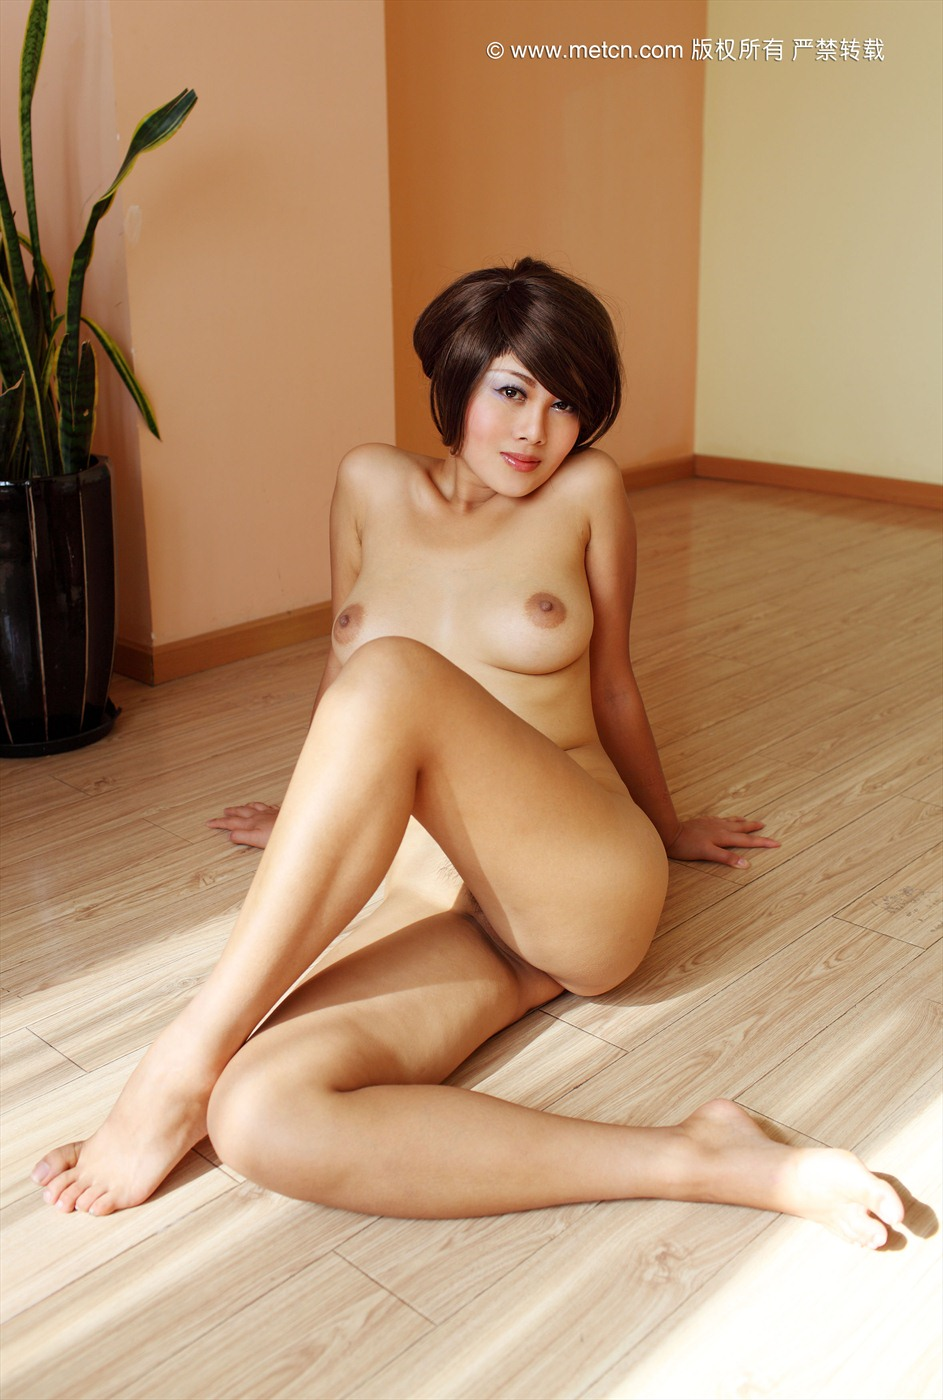 Chinese Nude Model Aolei